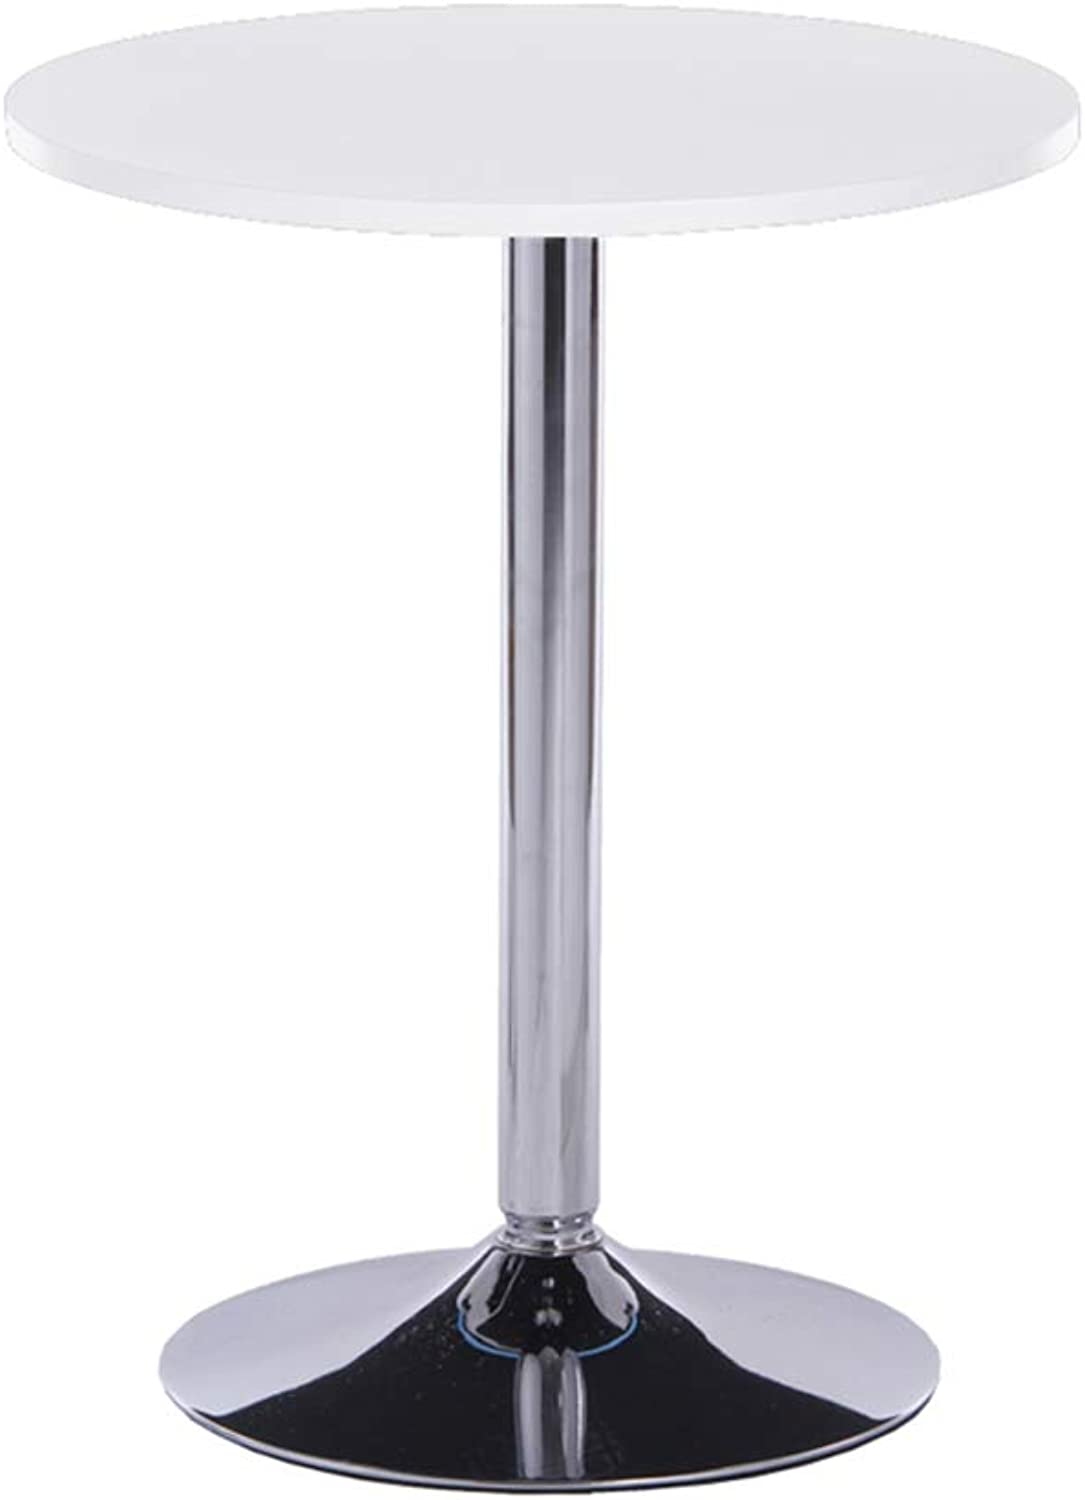 Simple and Stylish Side Table Pub Lift Round high bar Table,White,50  110cm